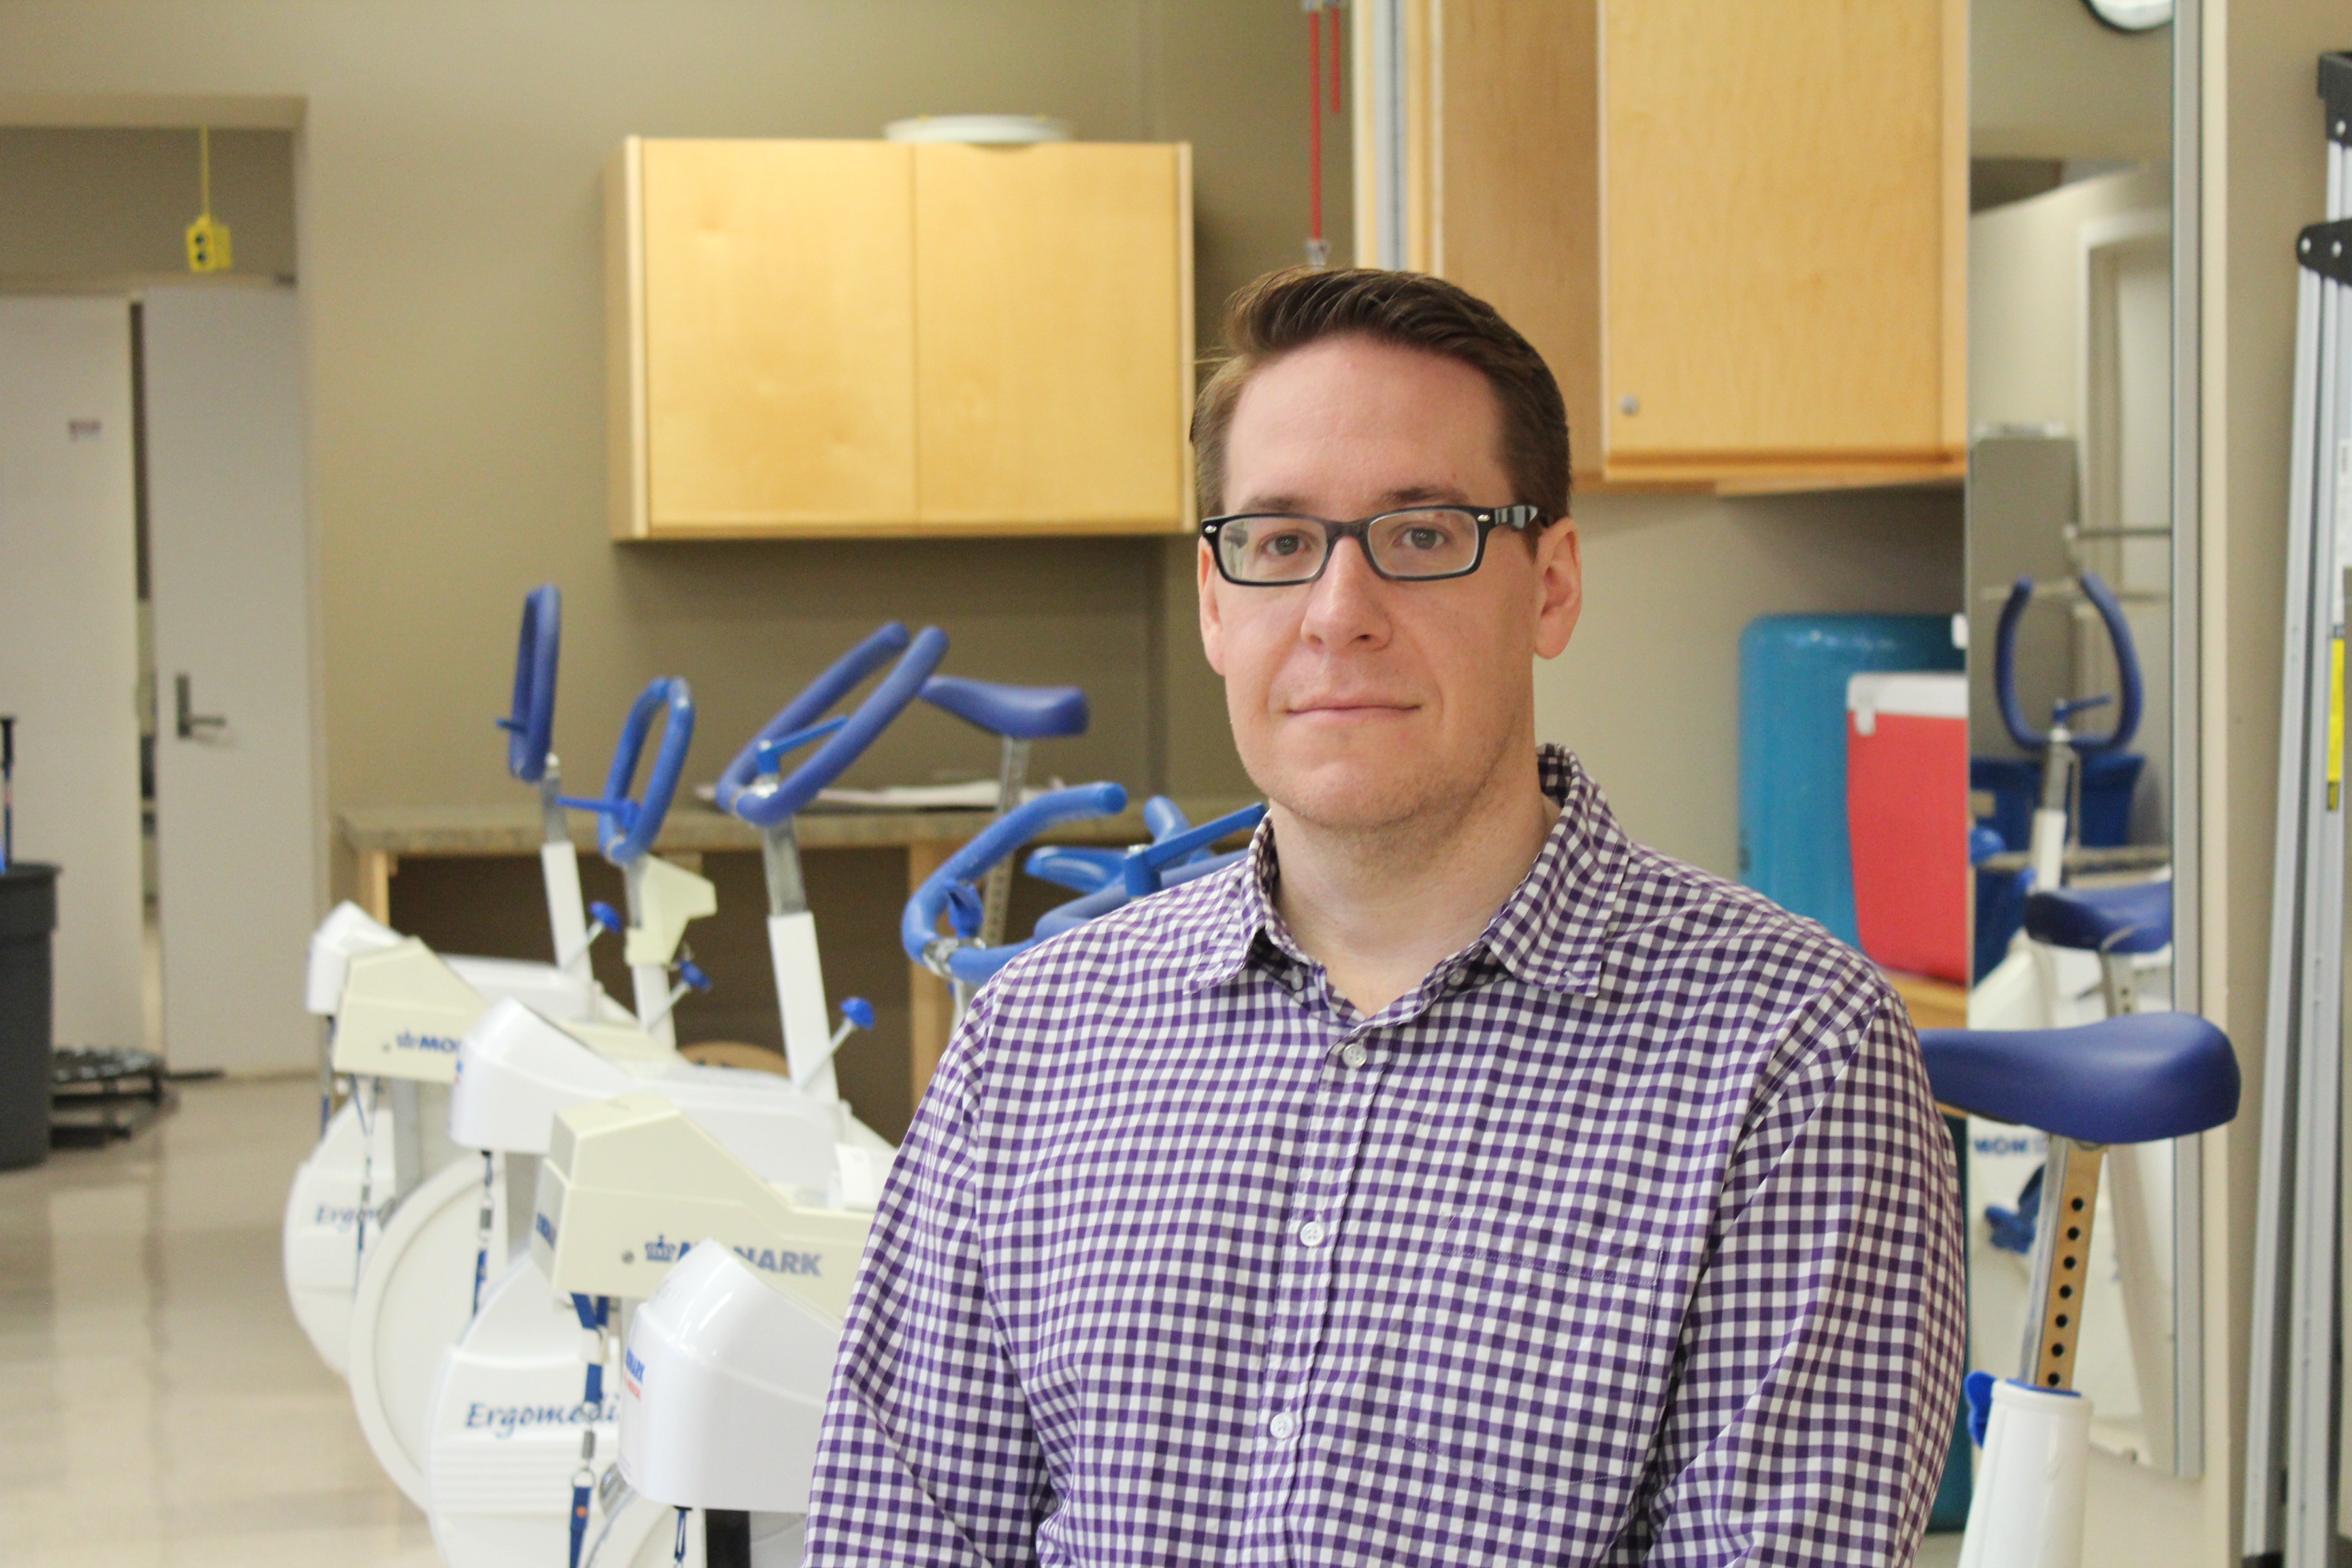 Patients who are not prescribed opioids find more improvements in physical function, U of A study finds